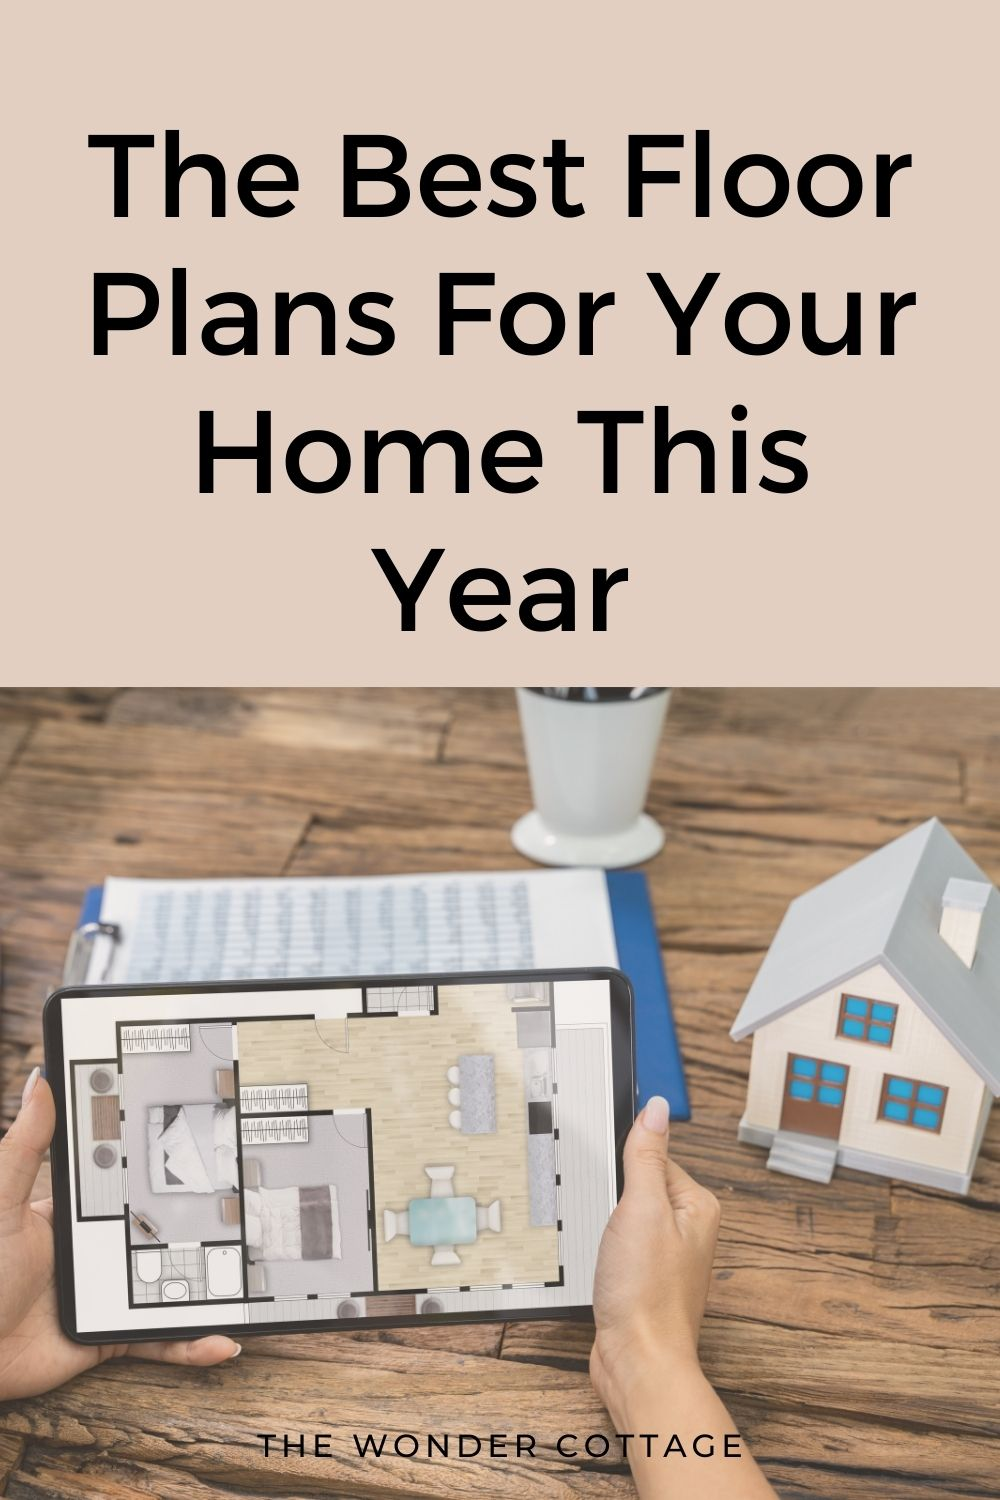 The best floor plans for your home this year